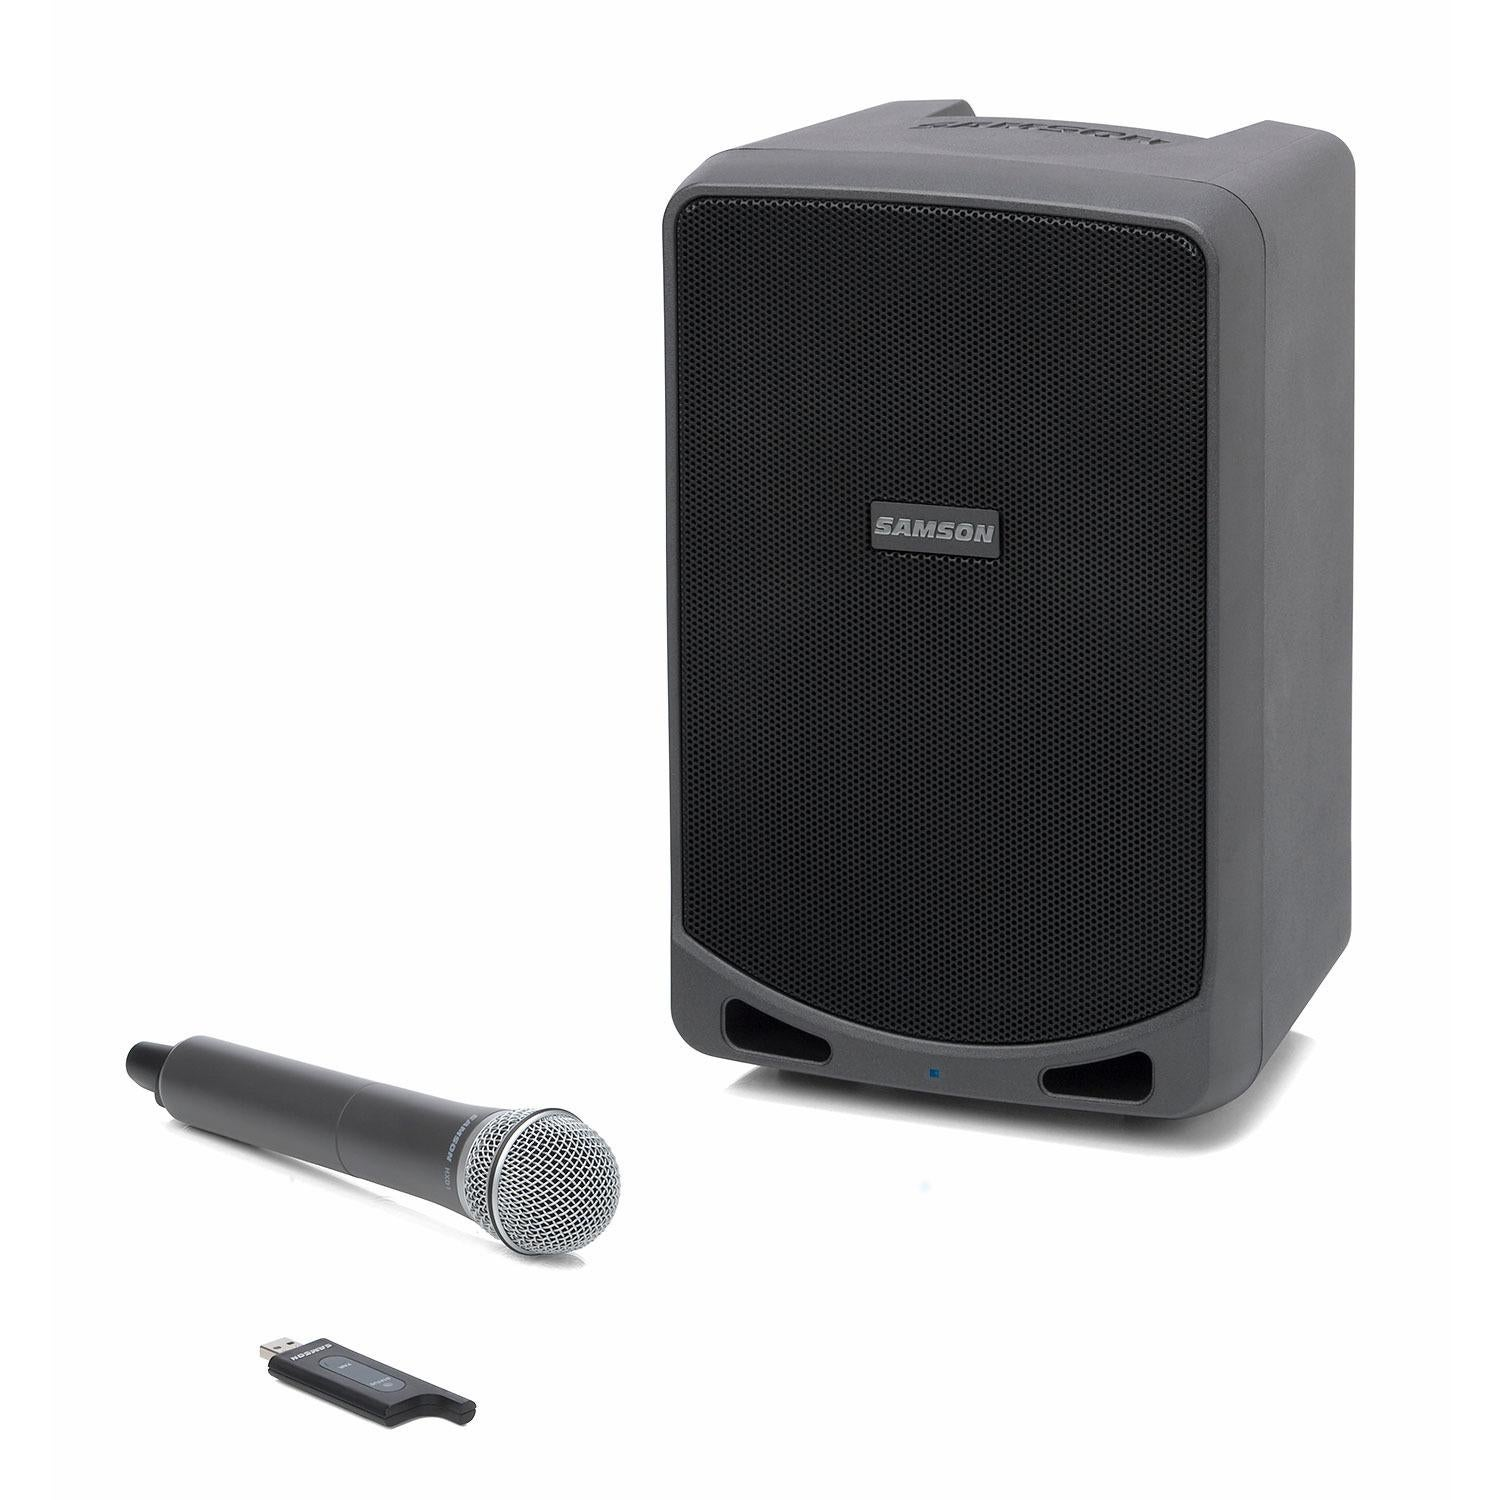 Samson XP106W Rechargeable PA System (Renewed)